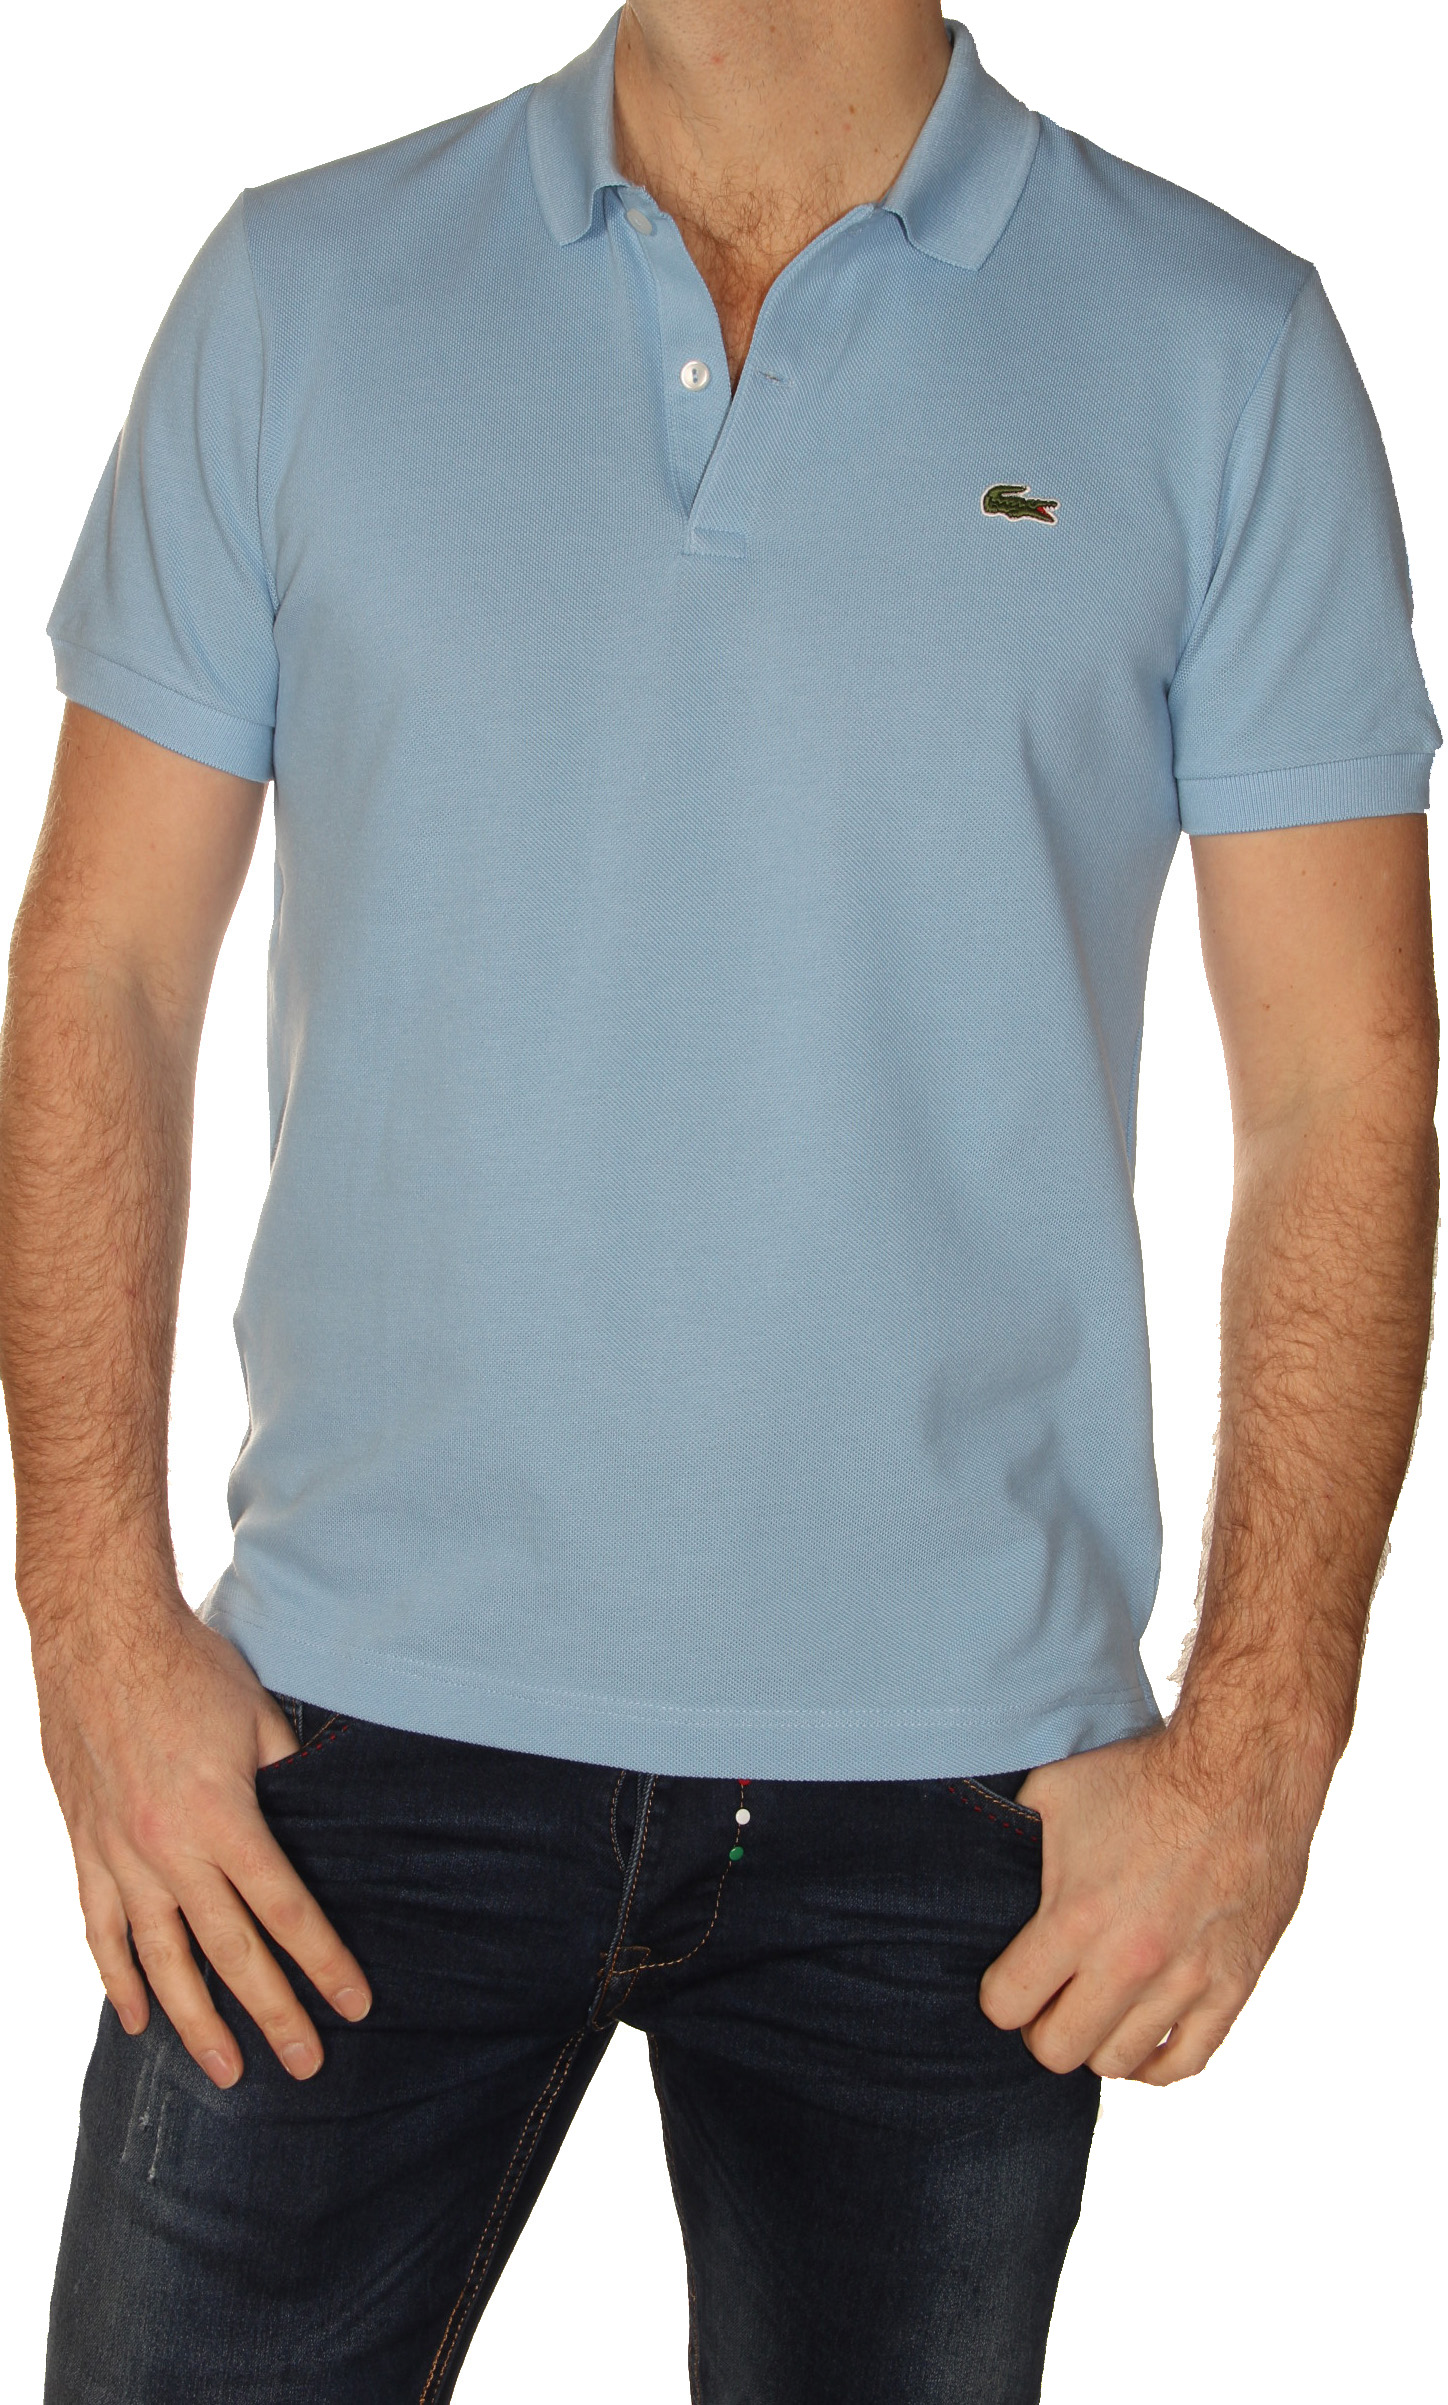 upload/product_display_image/201302/lacoste_ph2403_catamaran_a.jpg